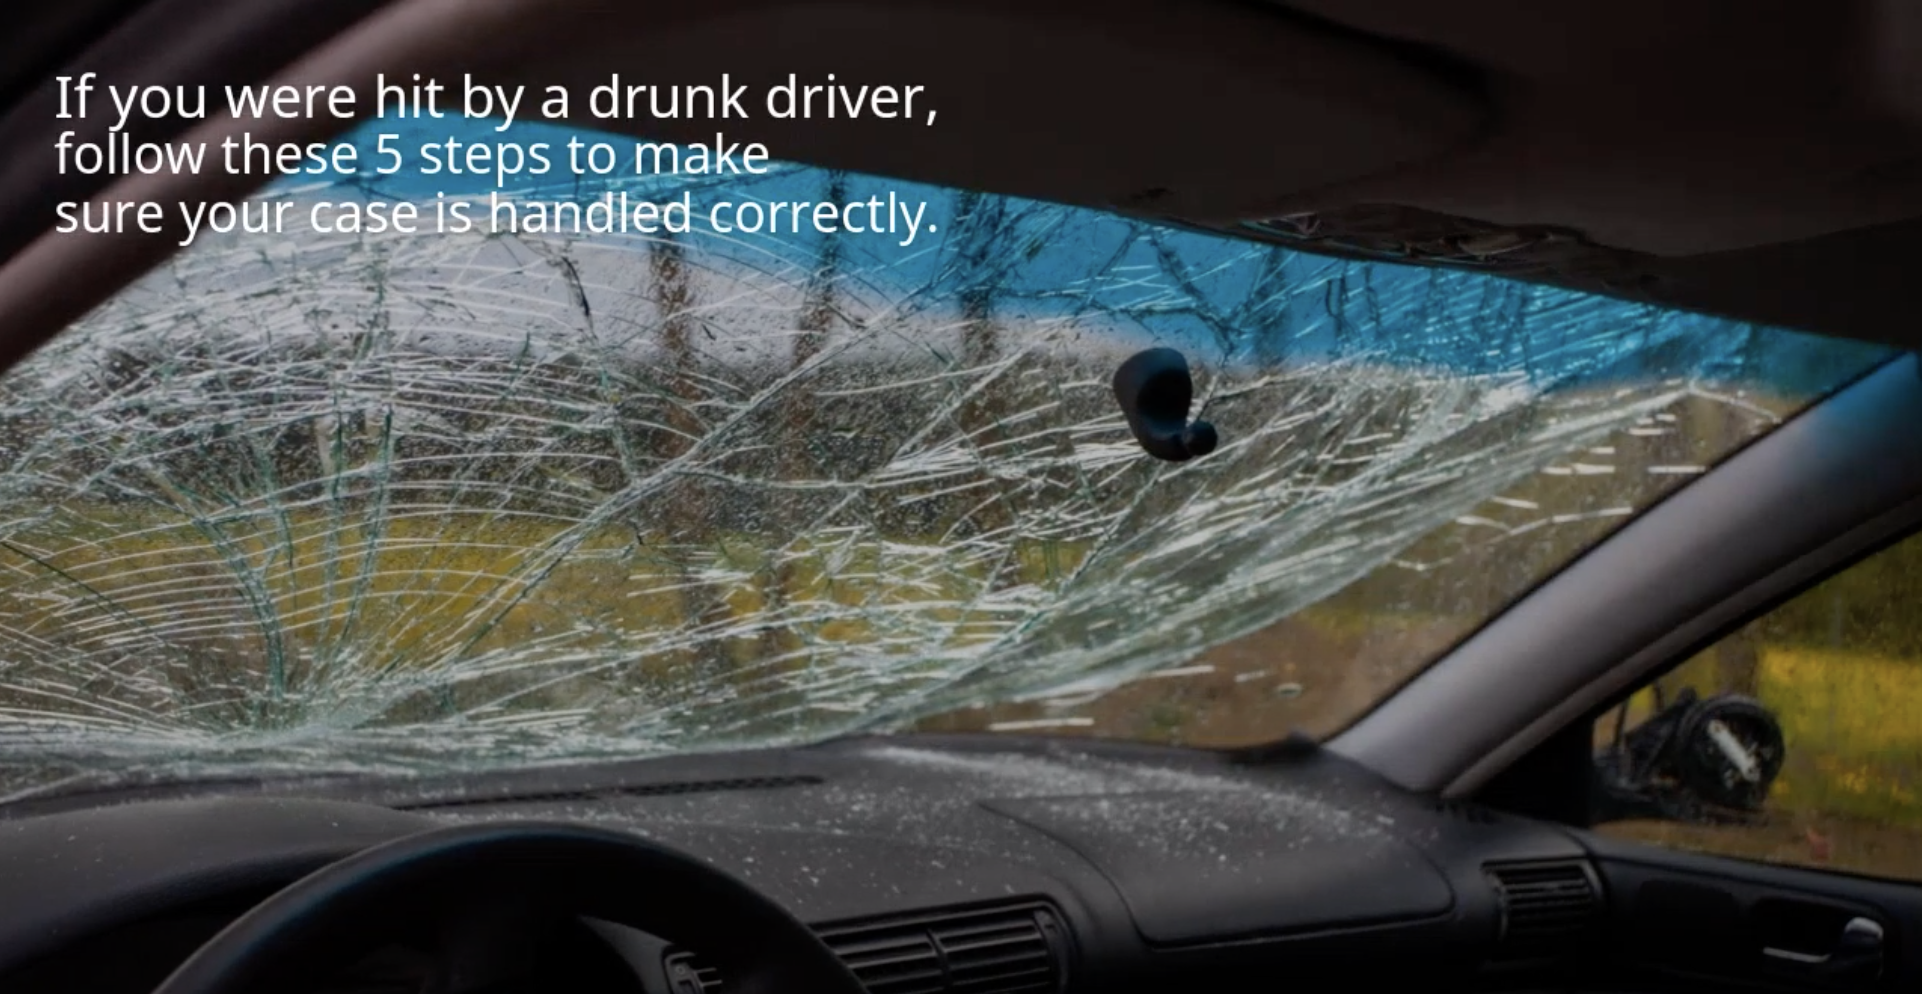 What Do I Do If I Was Hit By A Drunk Driver video thumbnail